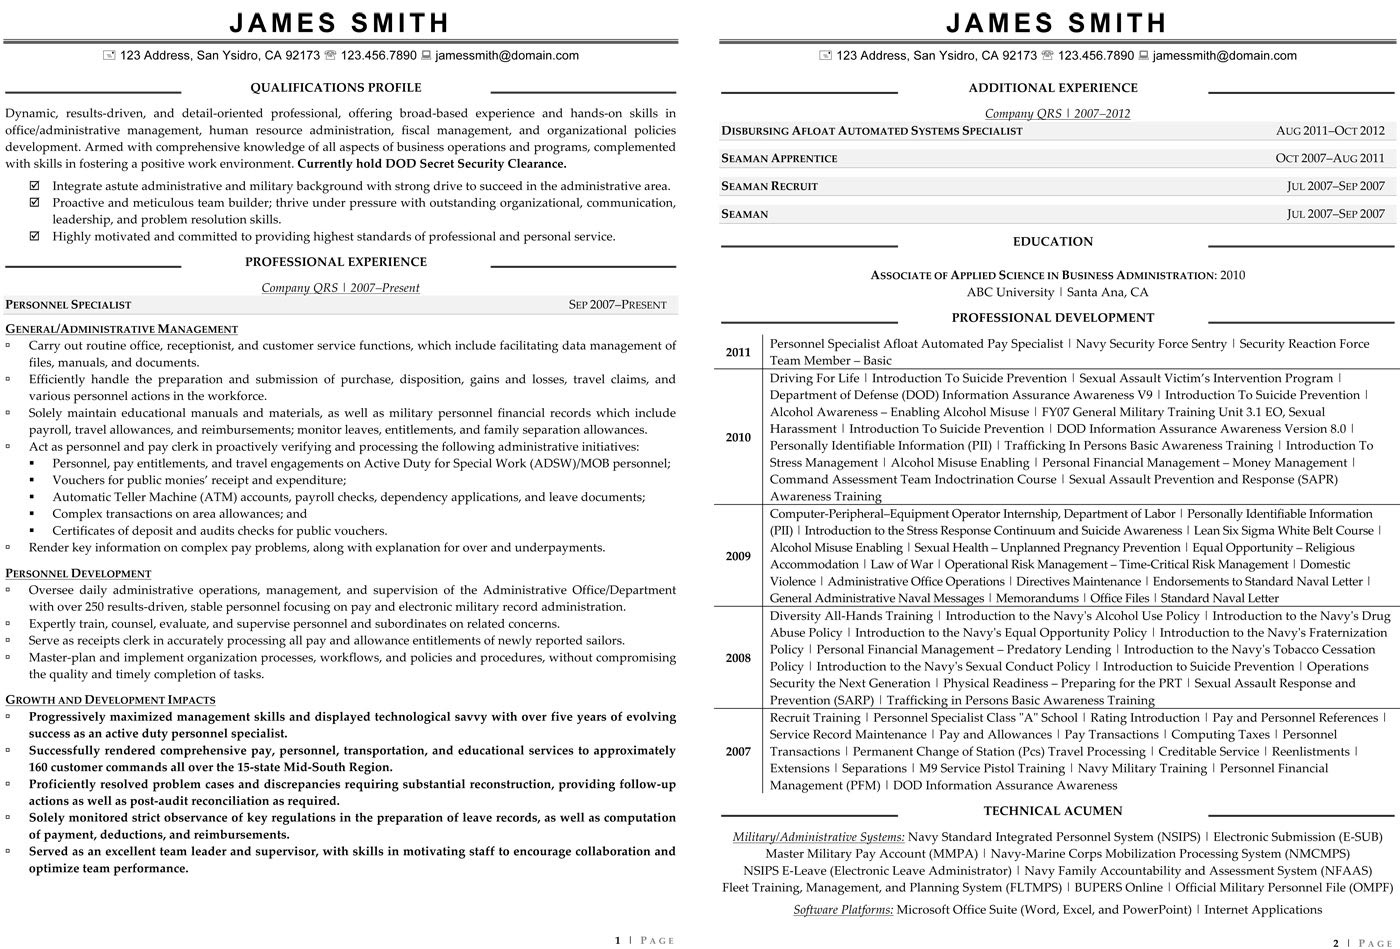 skills section in resume technical skills section resume – Skills Section Resume Examples